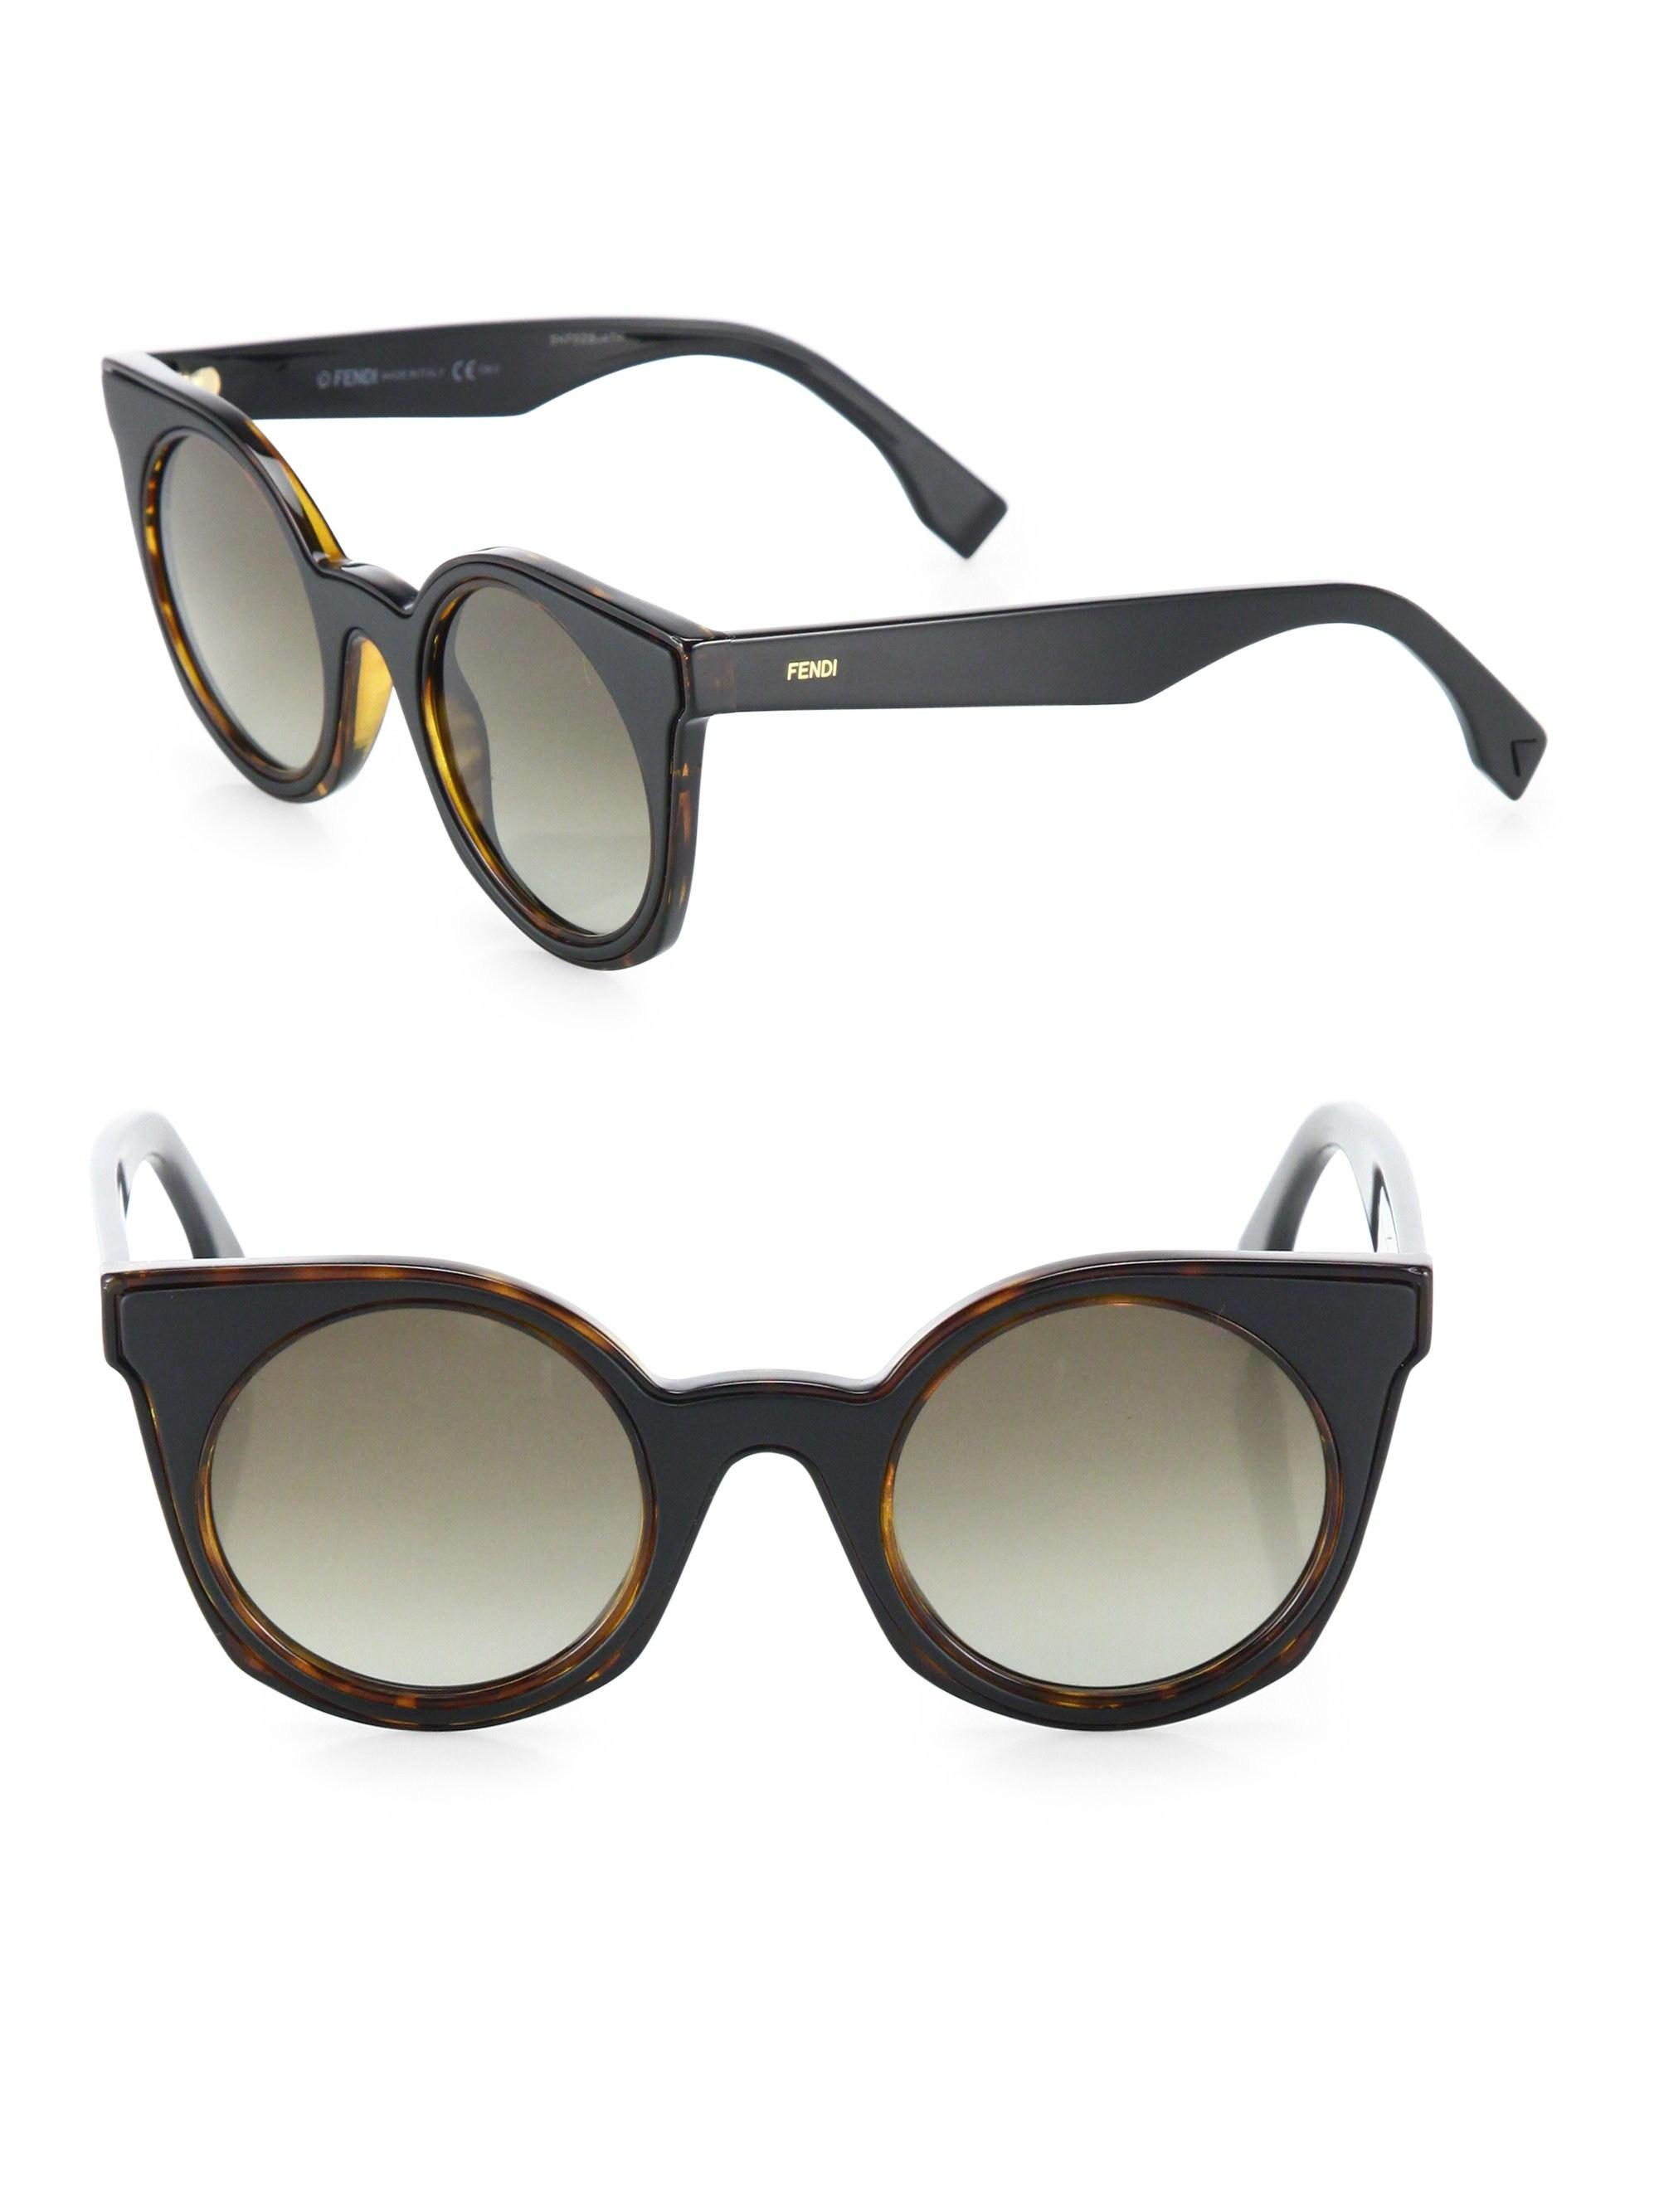 085e7069ddd6b Lyst - Fendi Women s 48mm Rounded Cat-eye Sunglasses - Havana Black ...